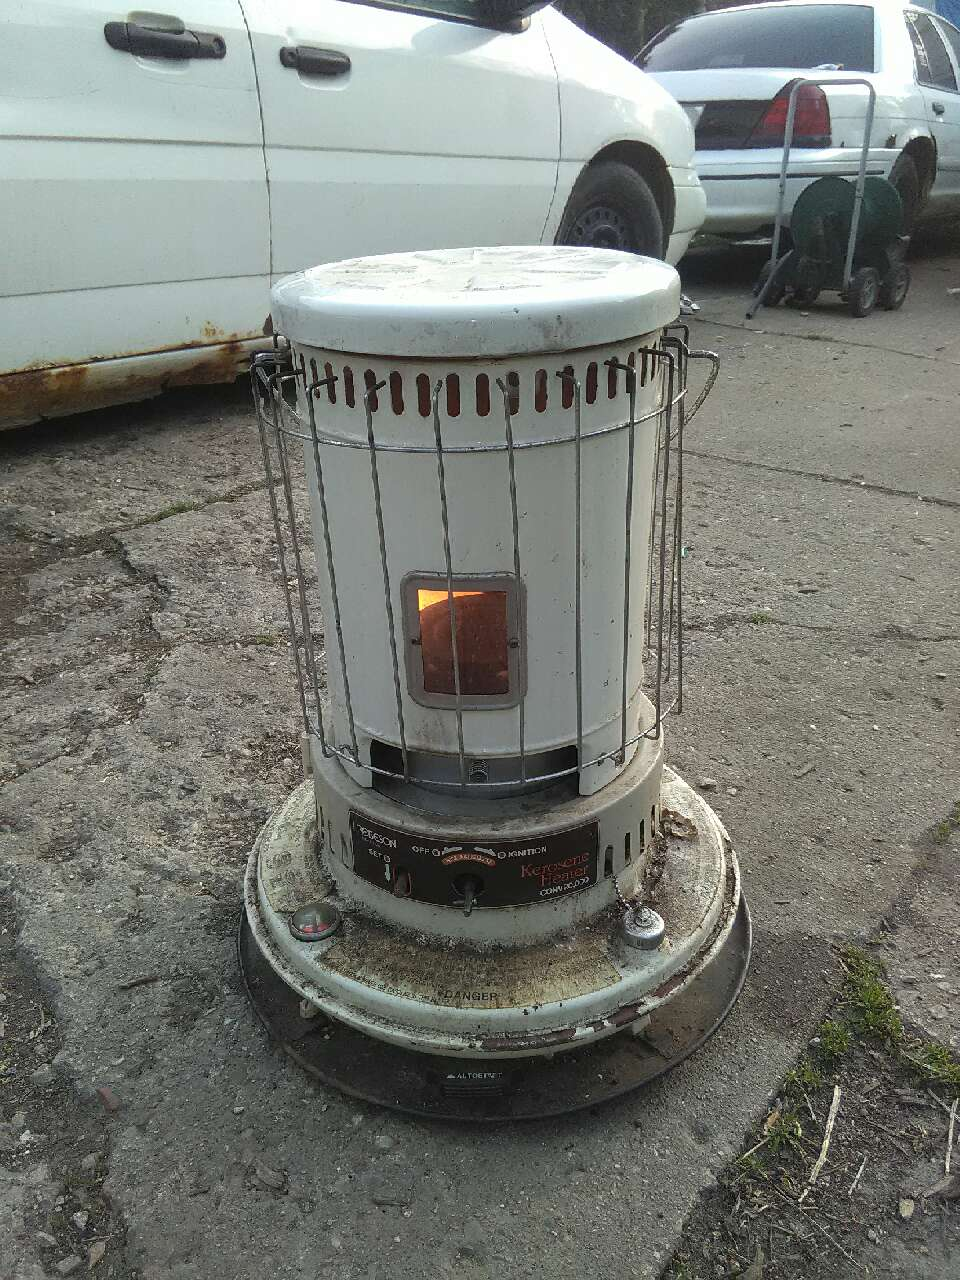 Patio Space Heater - Outdoor Space Heater Rental Las Vegas ...